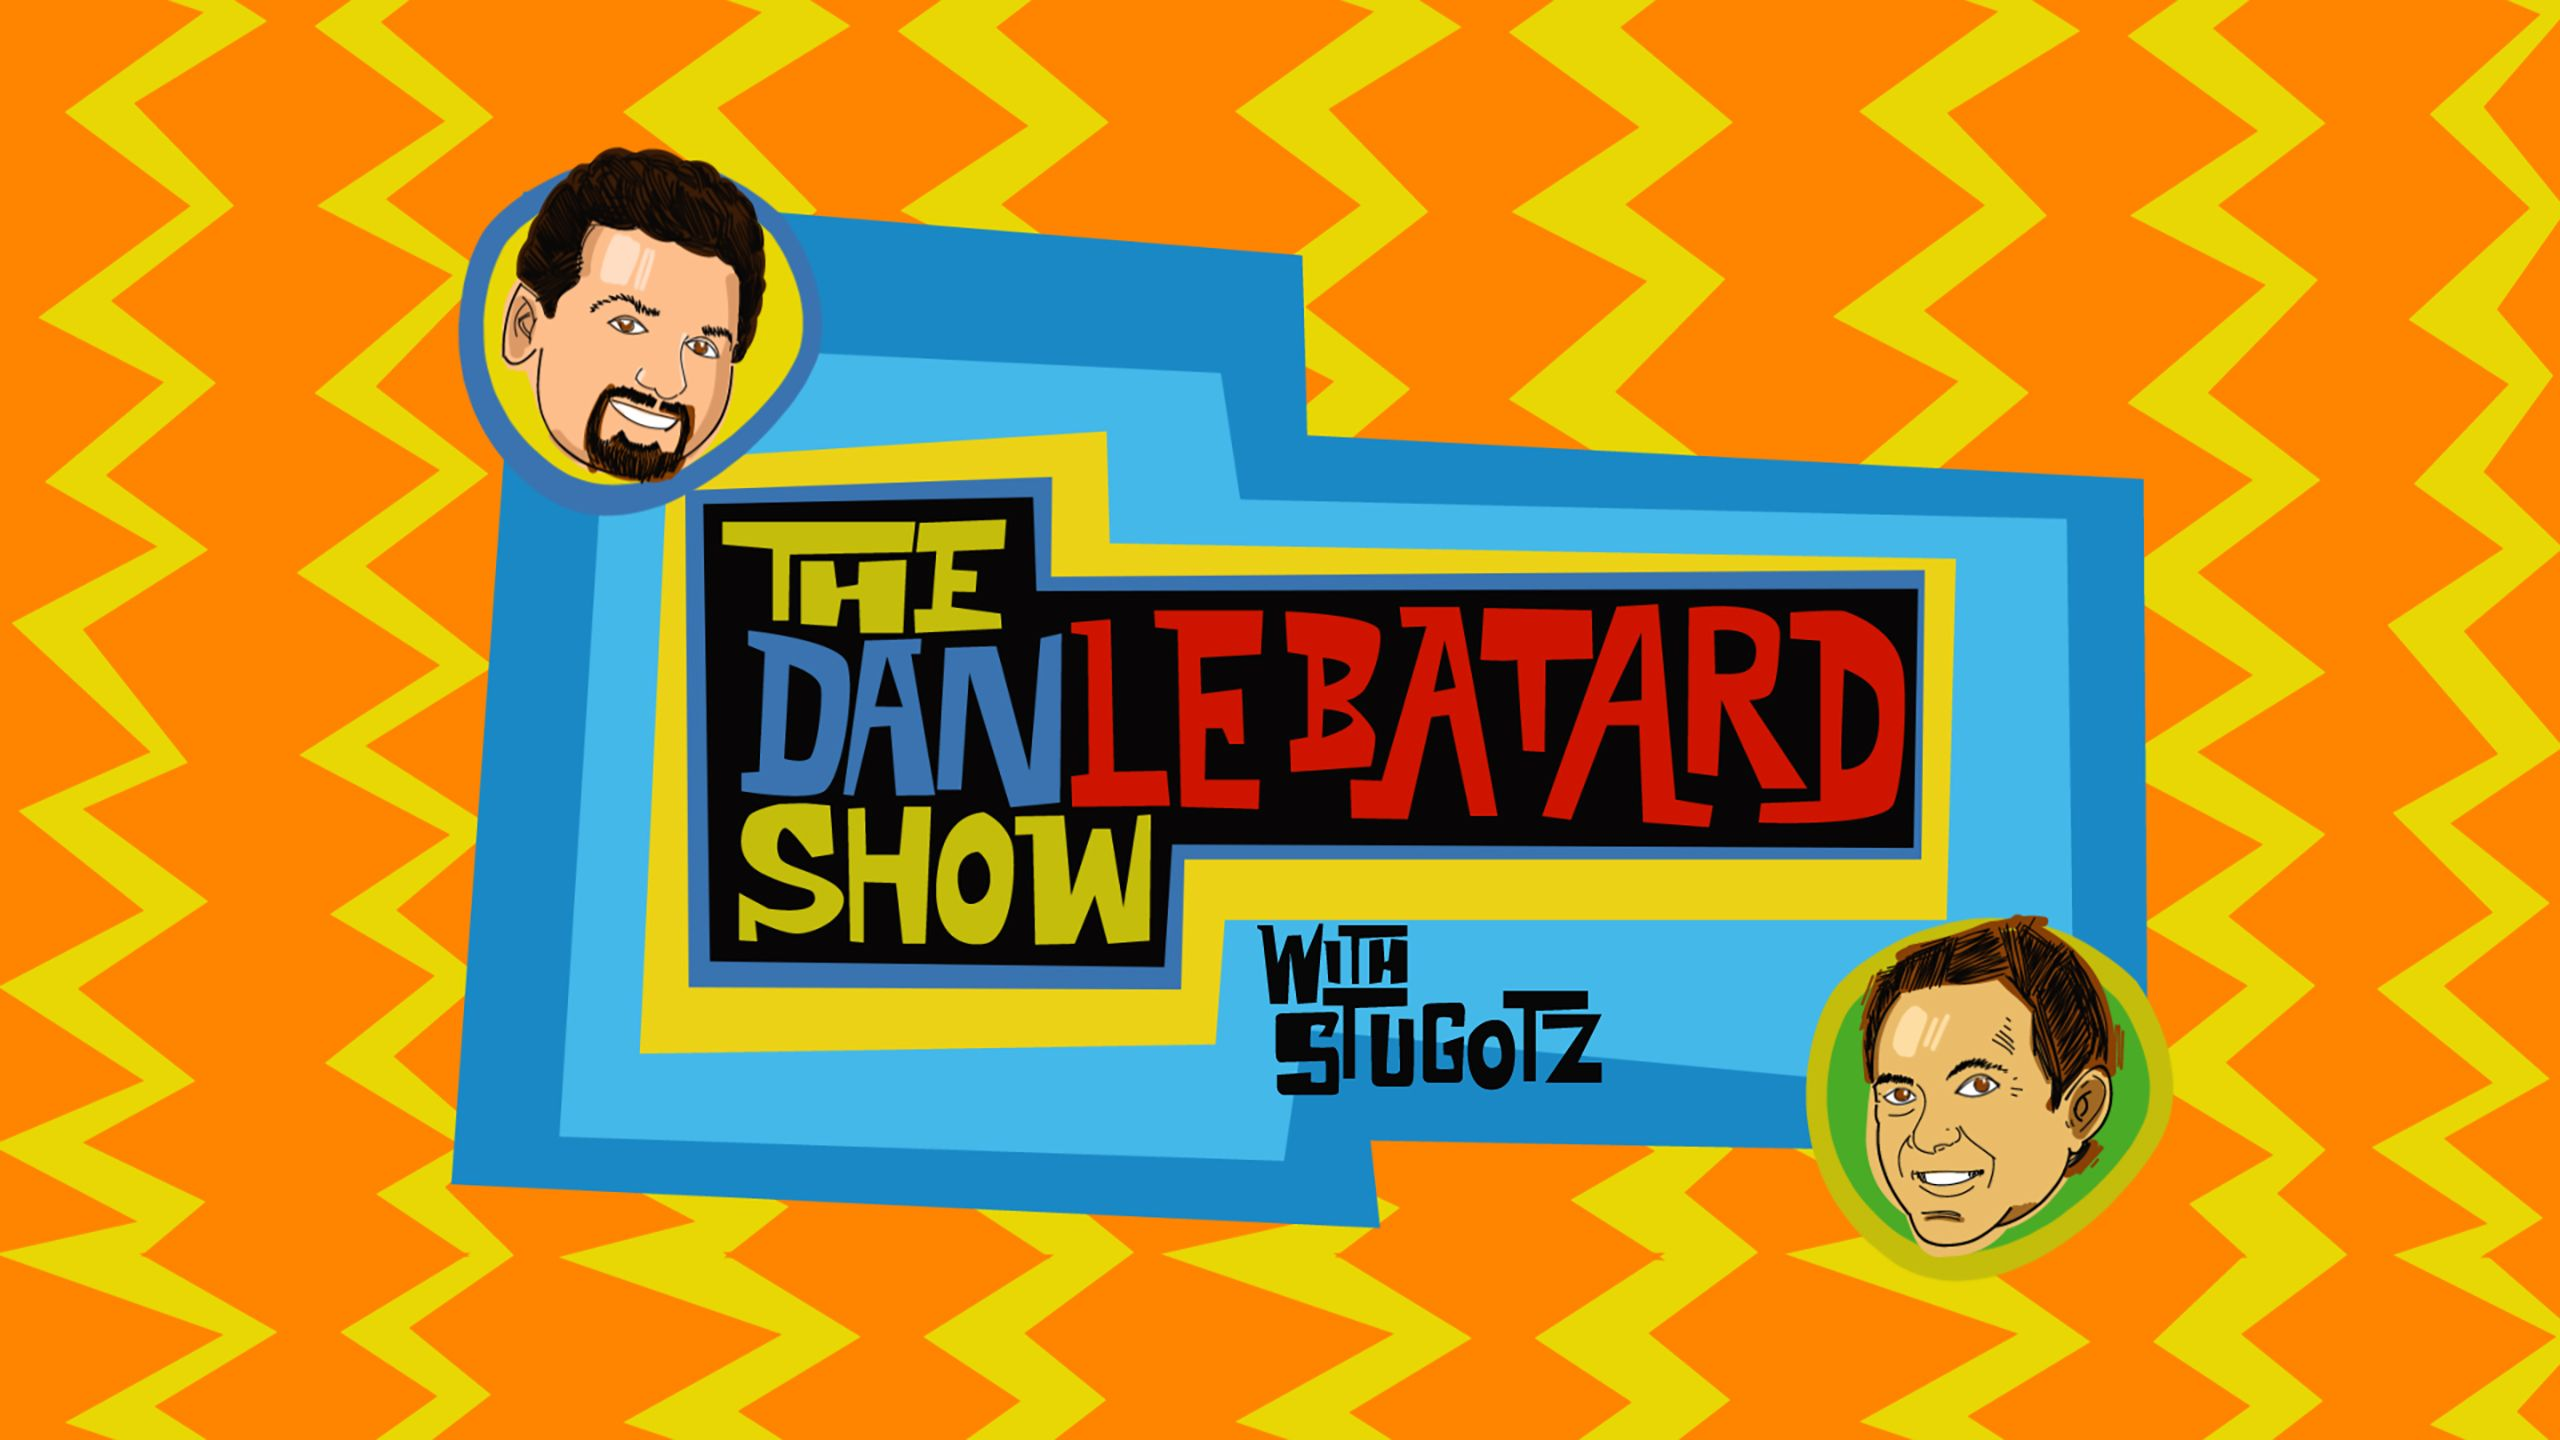 Tue, 4/24 - The Dan Le Batard Show with Stugotz Presented by Progressive